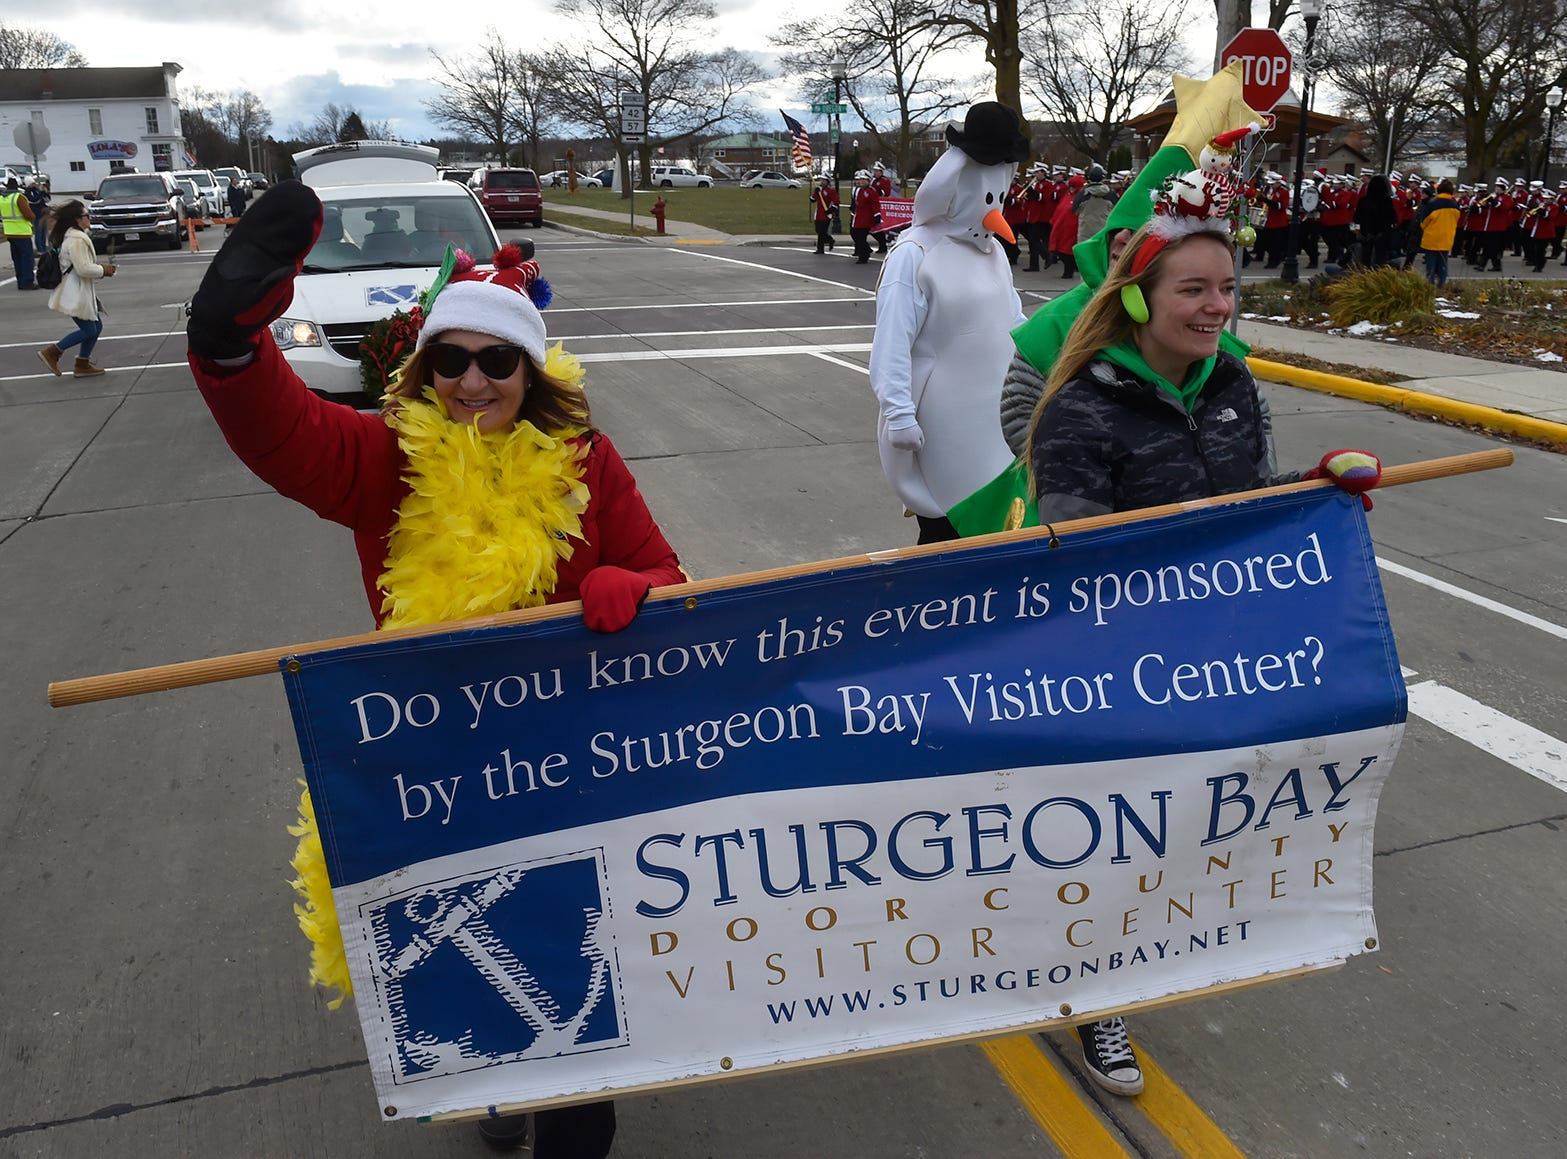 The annual parade is sponsored by the Sturgeon Bay Visitor Center on Saturday, Nov. 17, 2018, in Sturgeon Bay. Tina M. Gohr/USA TODAY NETWORK-Wisconsin